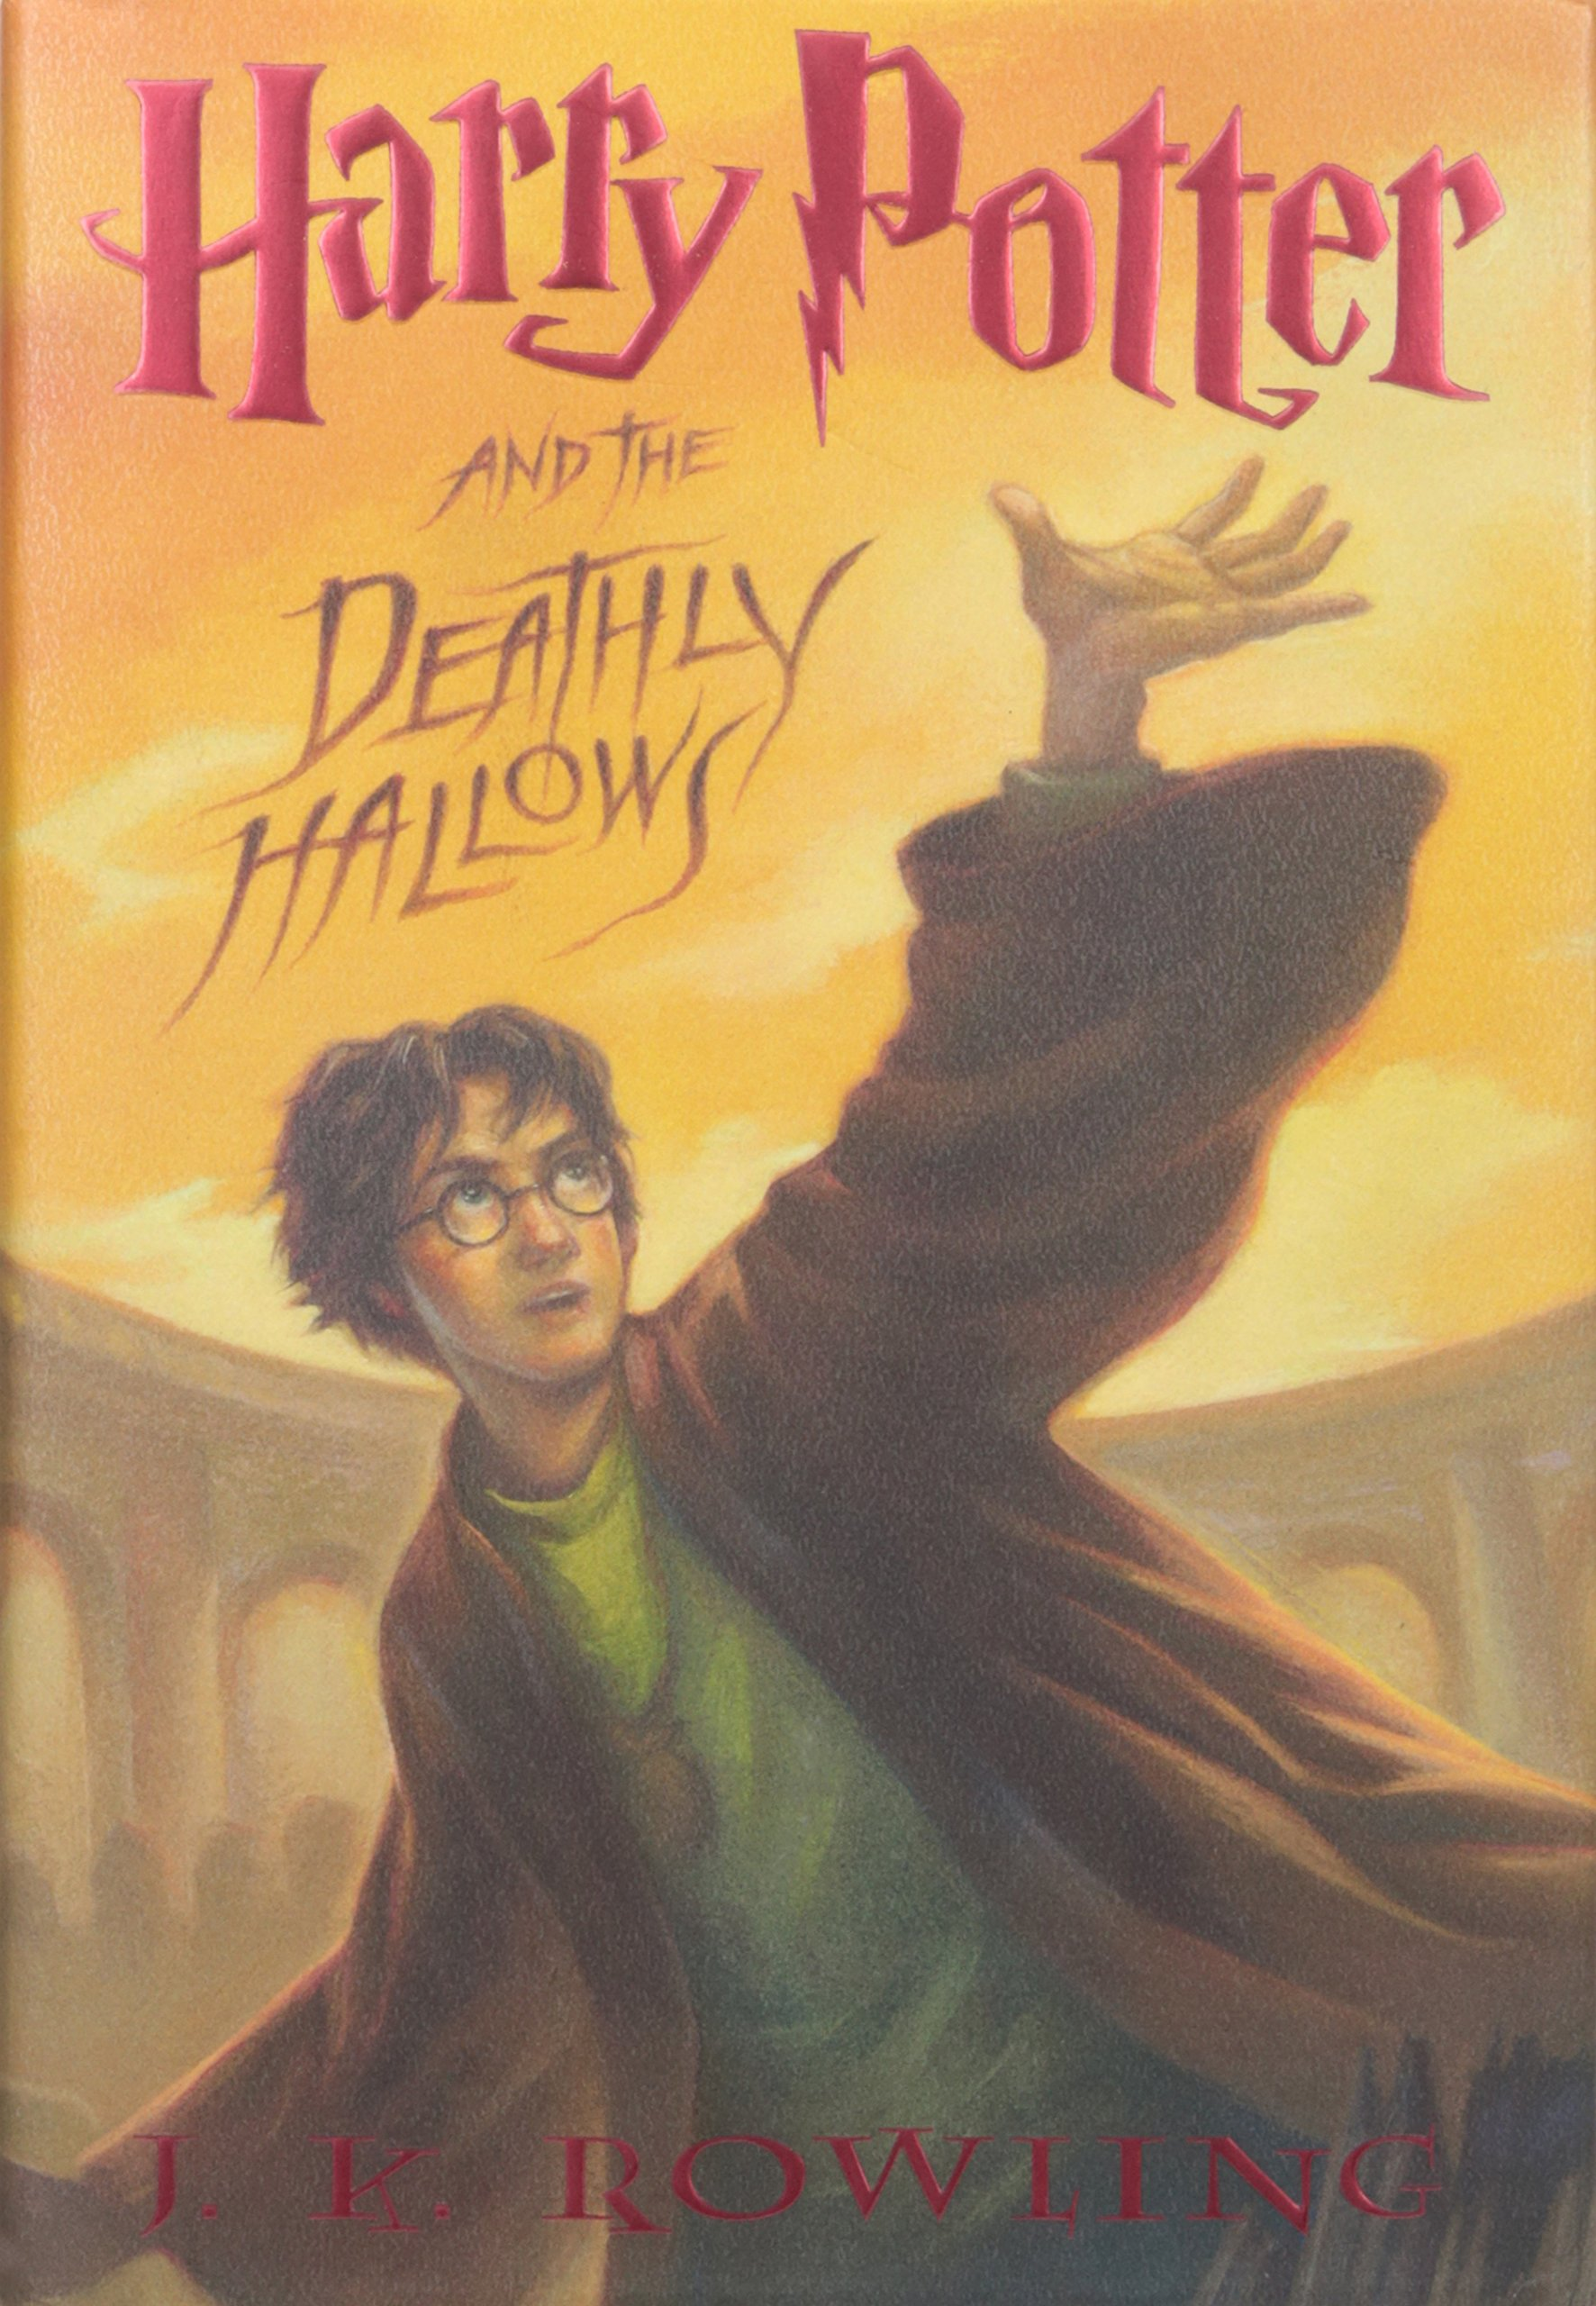 Image result for harry potter deathly hallows book cover